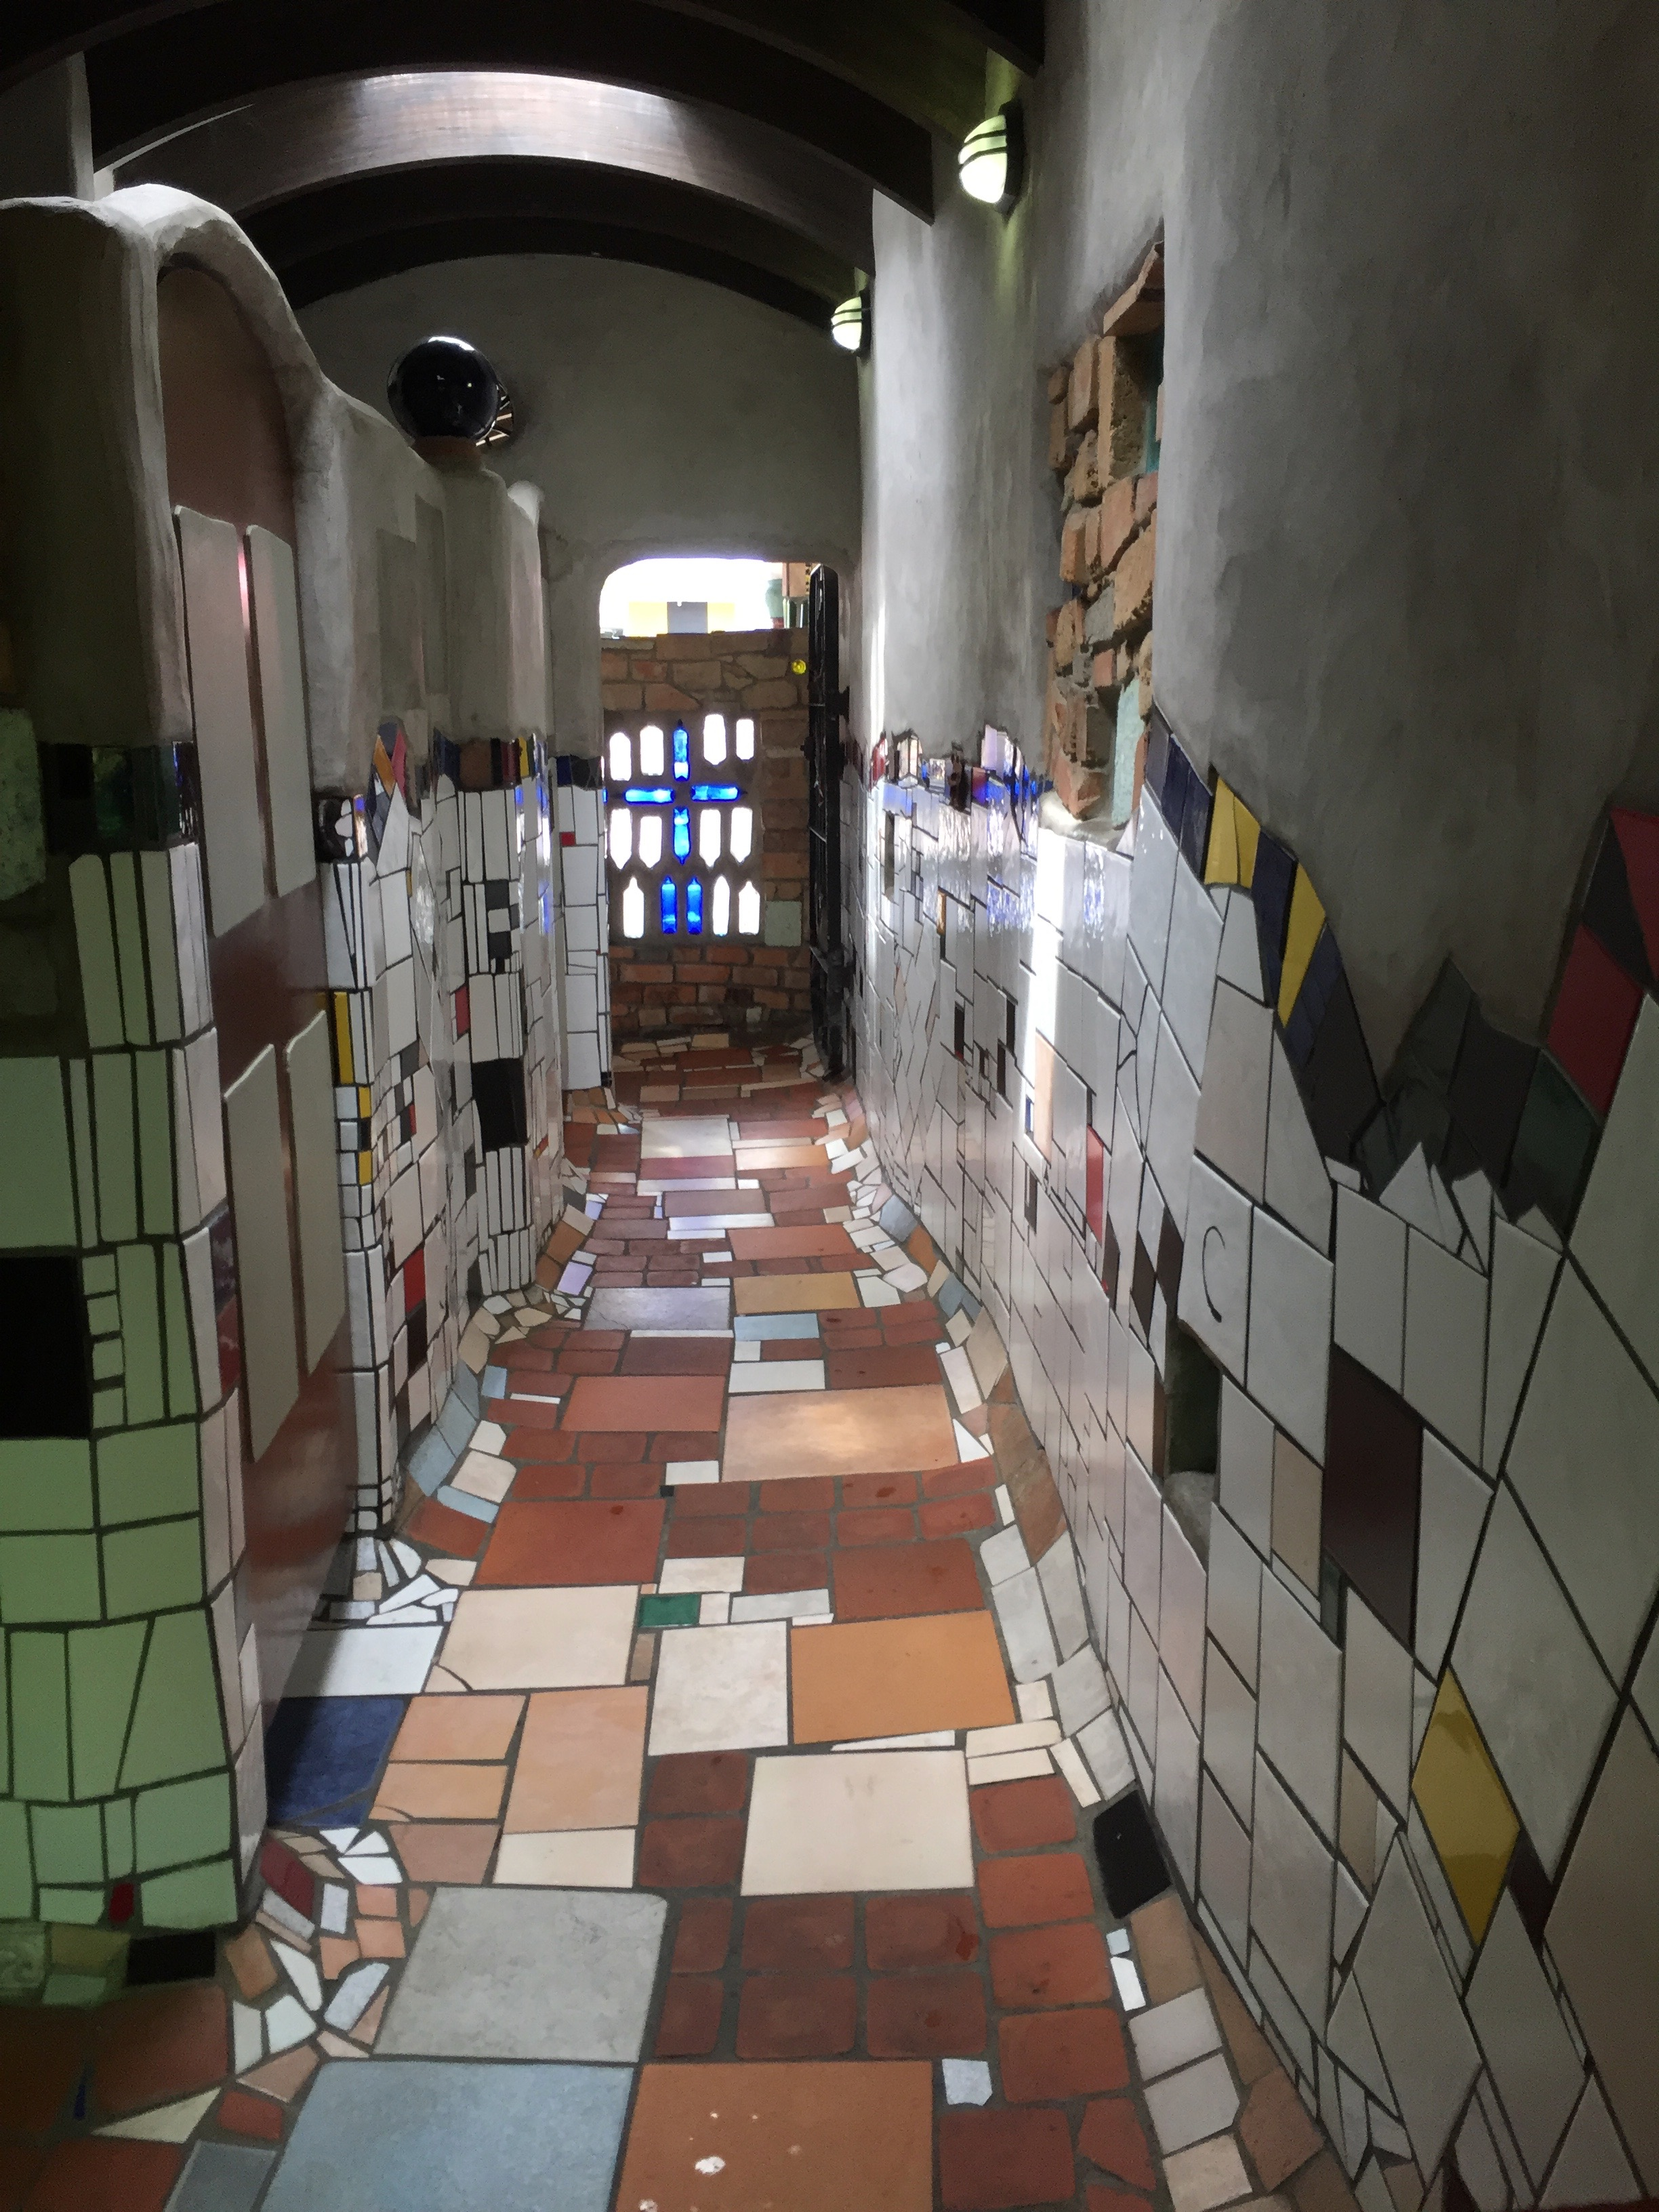 Most Beautiful Artistic TOILETS Ever by Hundertwasser!